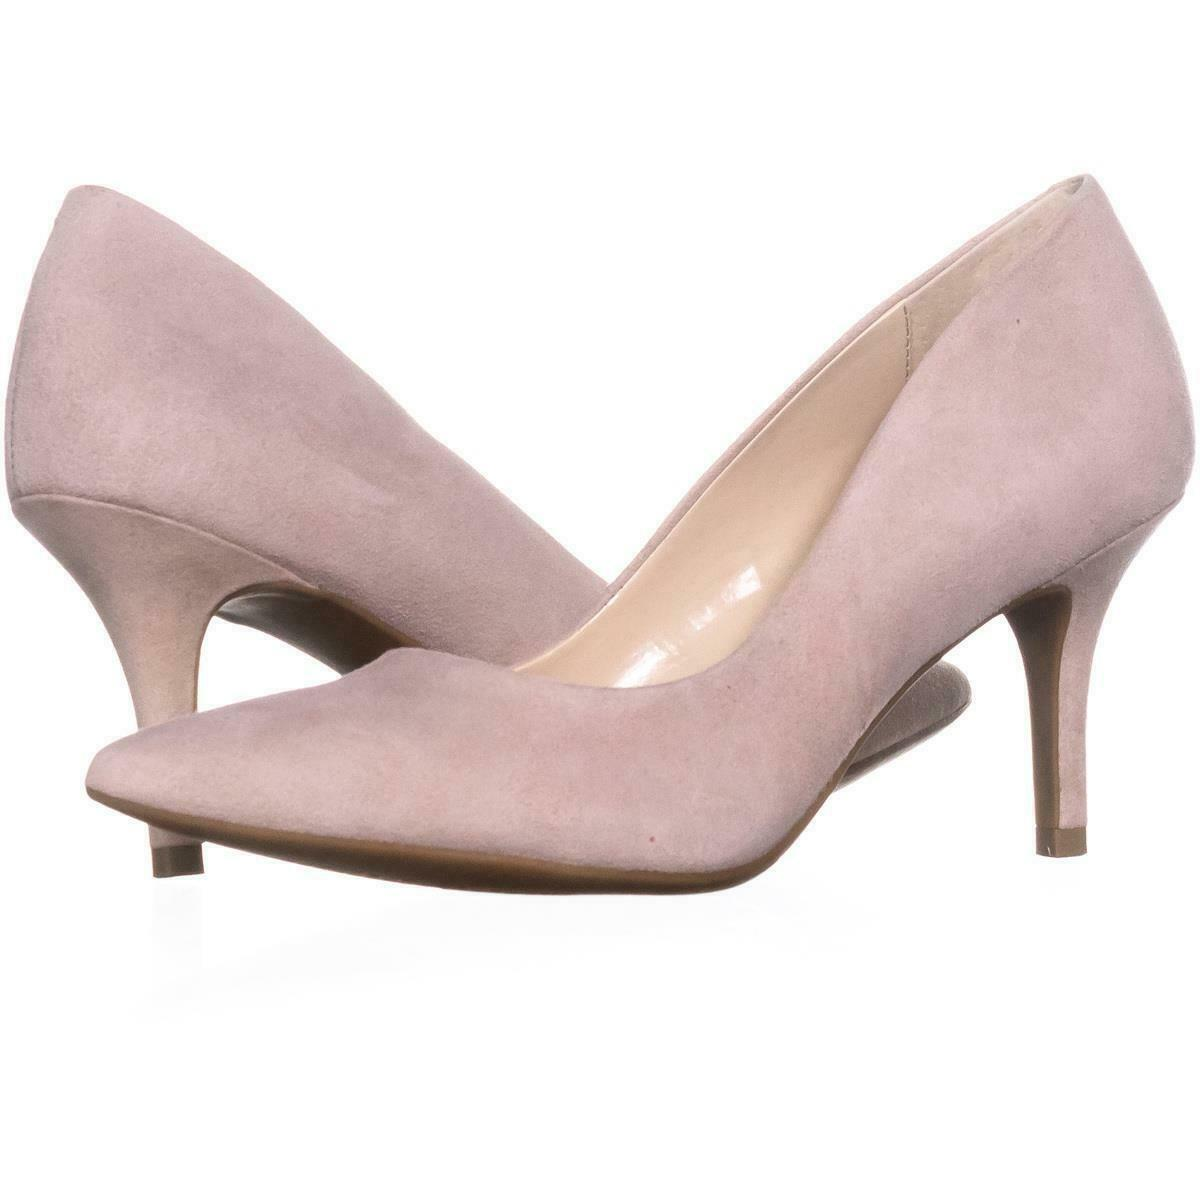 Primary image for A35 Jeules Classic Pumps 955, Dusty Rose, 5.5 US